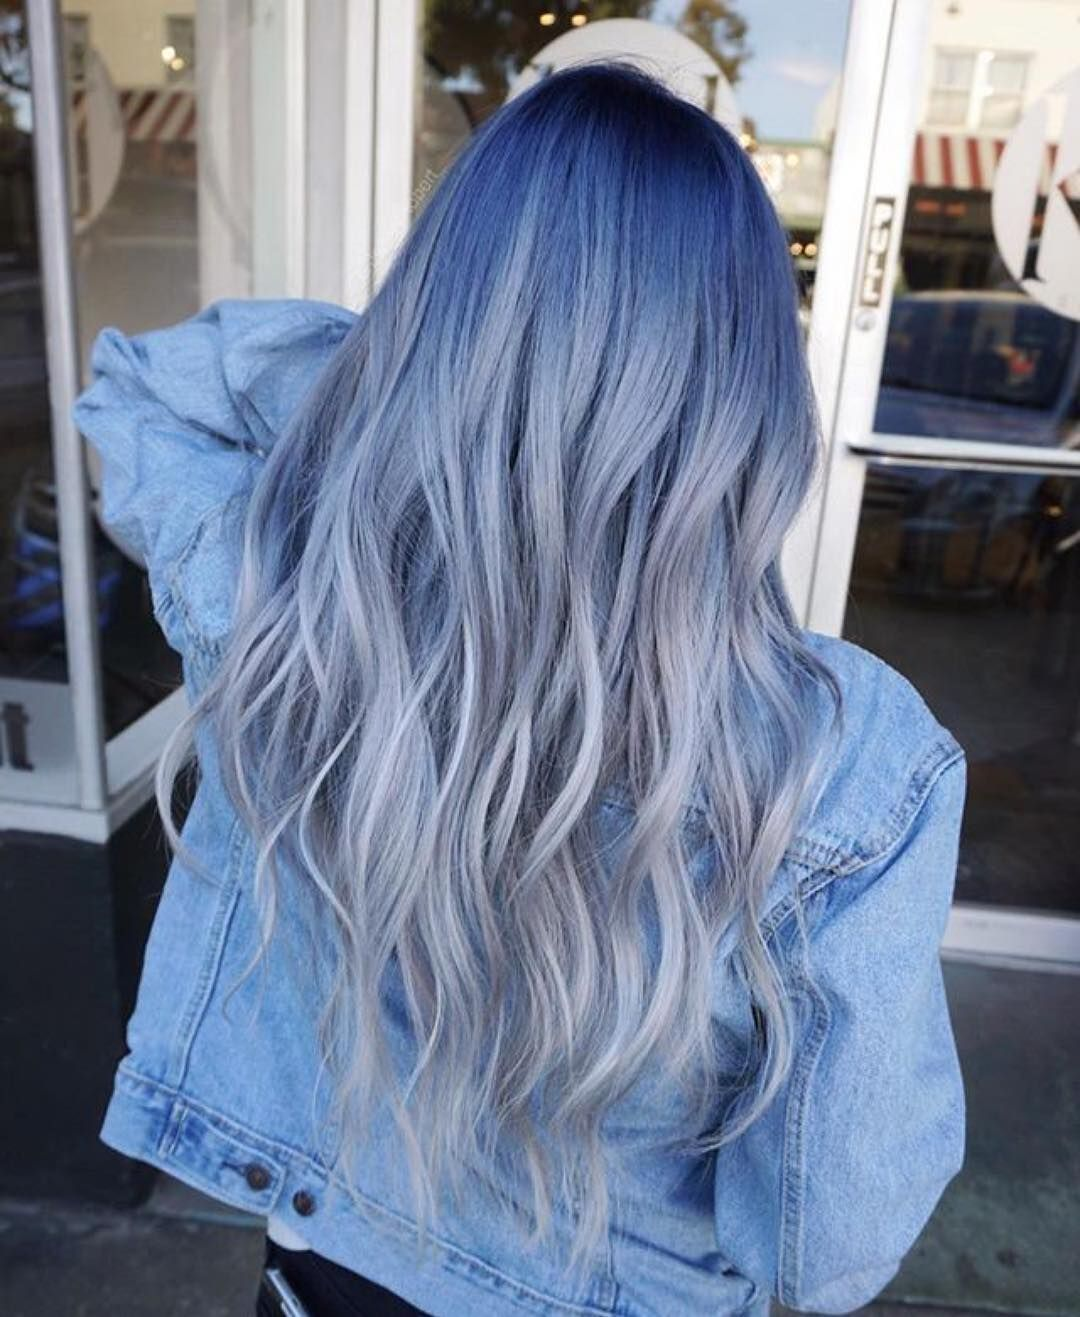 Photo of Check Out 2018's Coolest New Trend—Denim Dye Hair